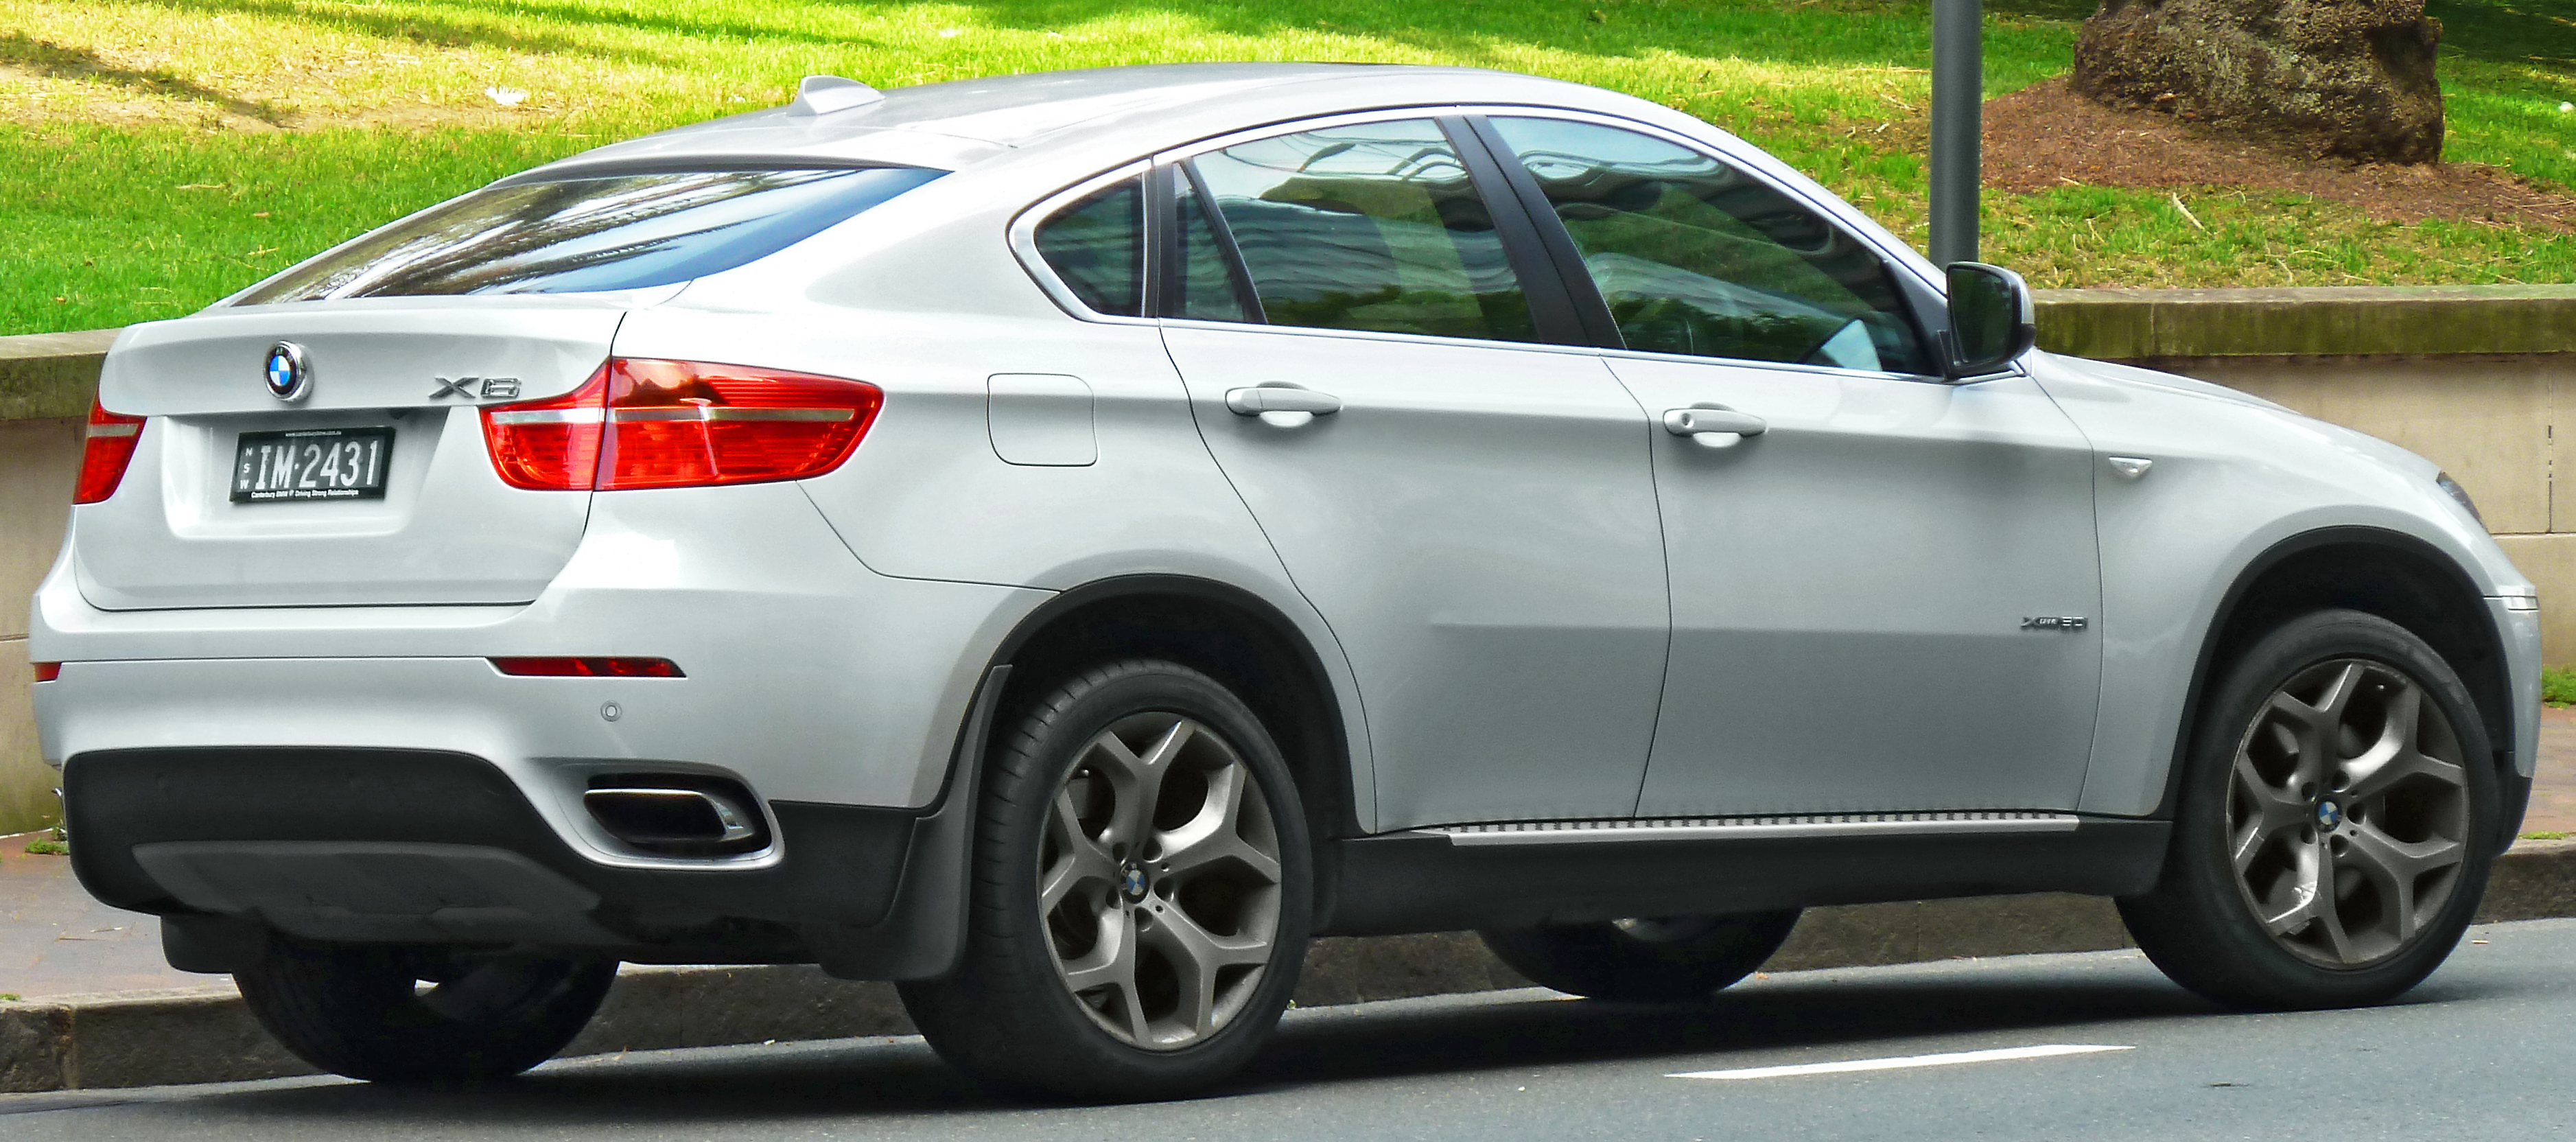 File:2008-2011 BMW X6 (E71) xDrive50i wagon (2011-11-08 ...